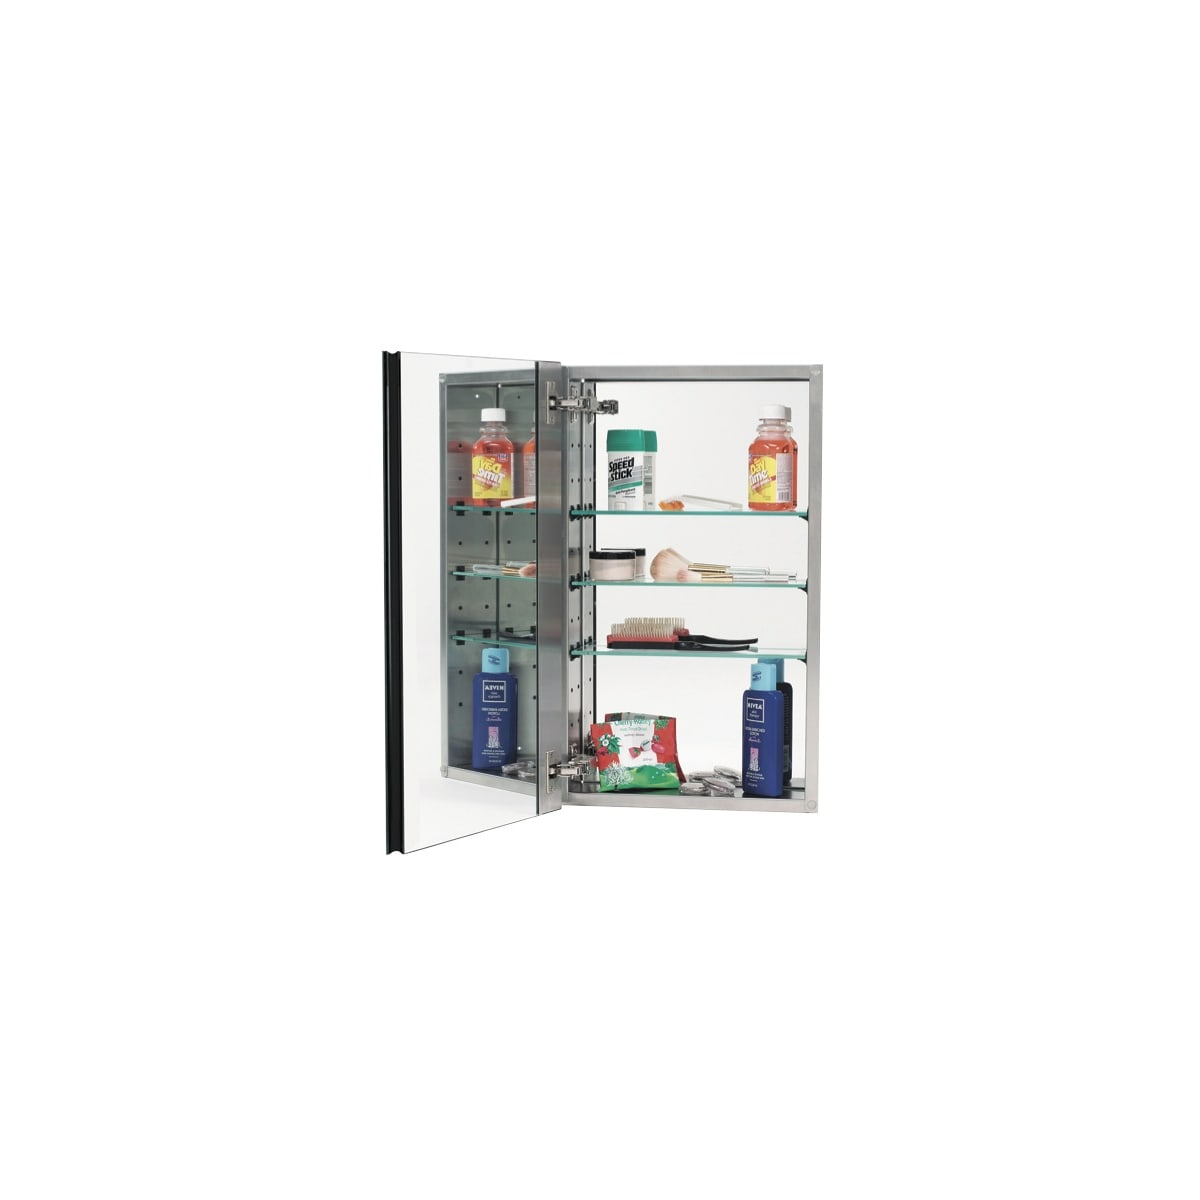 """Alno 2000 Series 15"""" x 25"""" Single Door Recessed Medicine Cabinet with Stainless Steel Interior, 3 Glass Shelves and Plain Edged Mirror"""